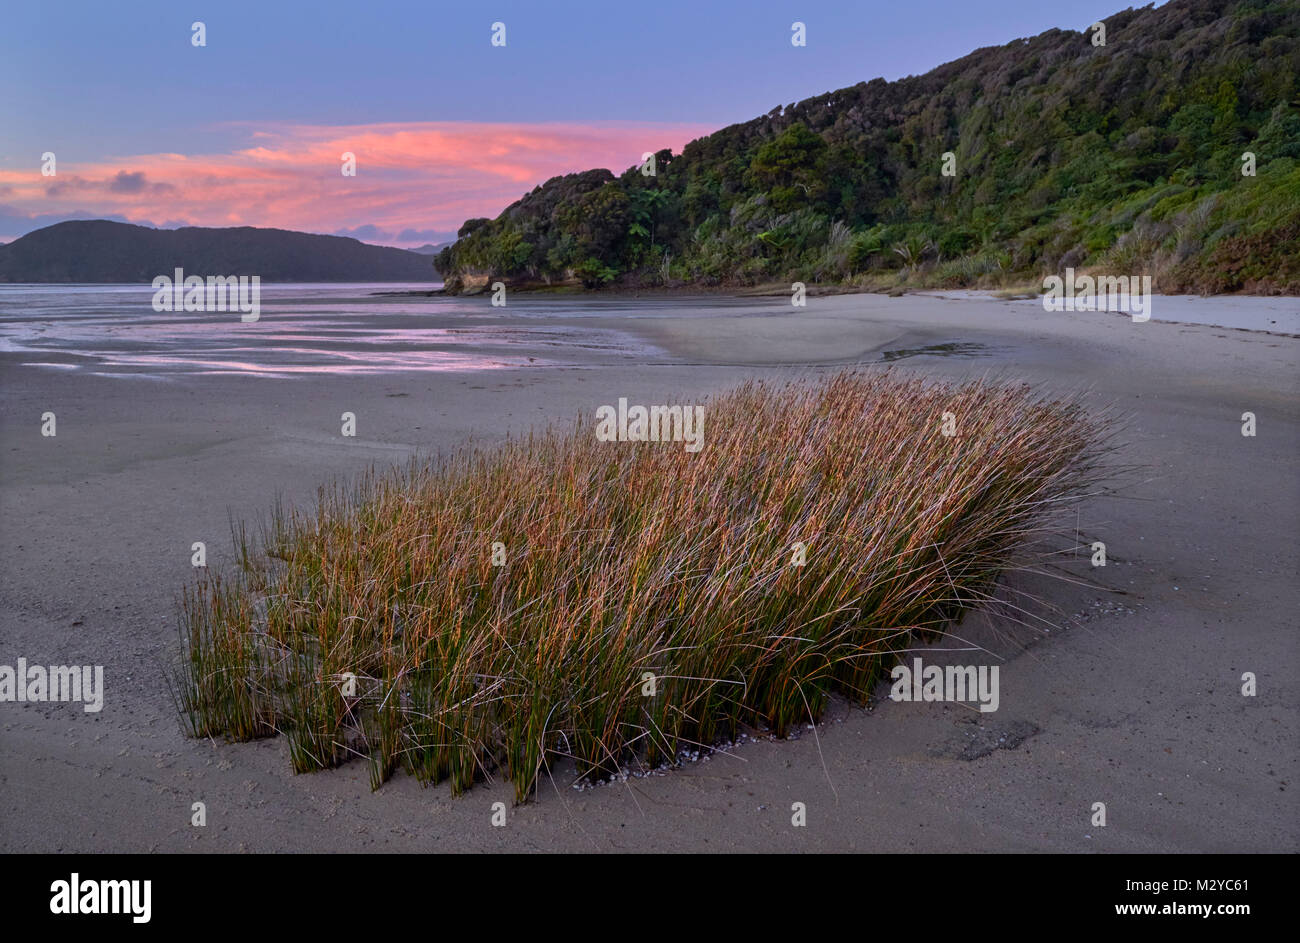 Clump of seagrass at low tide on Golden Bay. Puponga, Nelson Tasman, New Zealand. - Stock Image